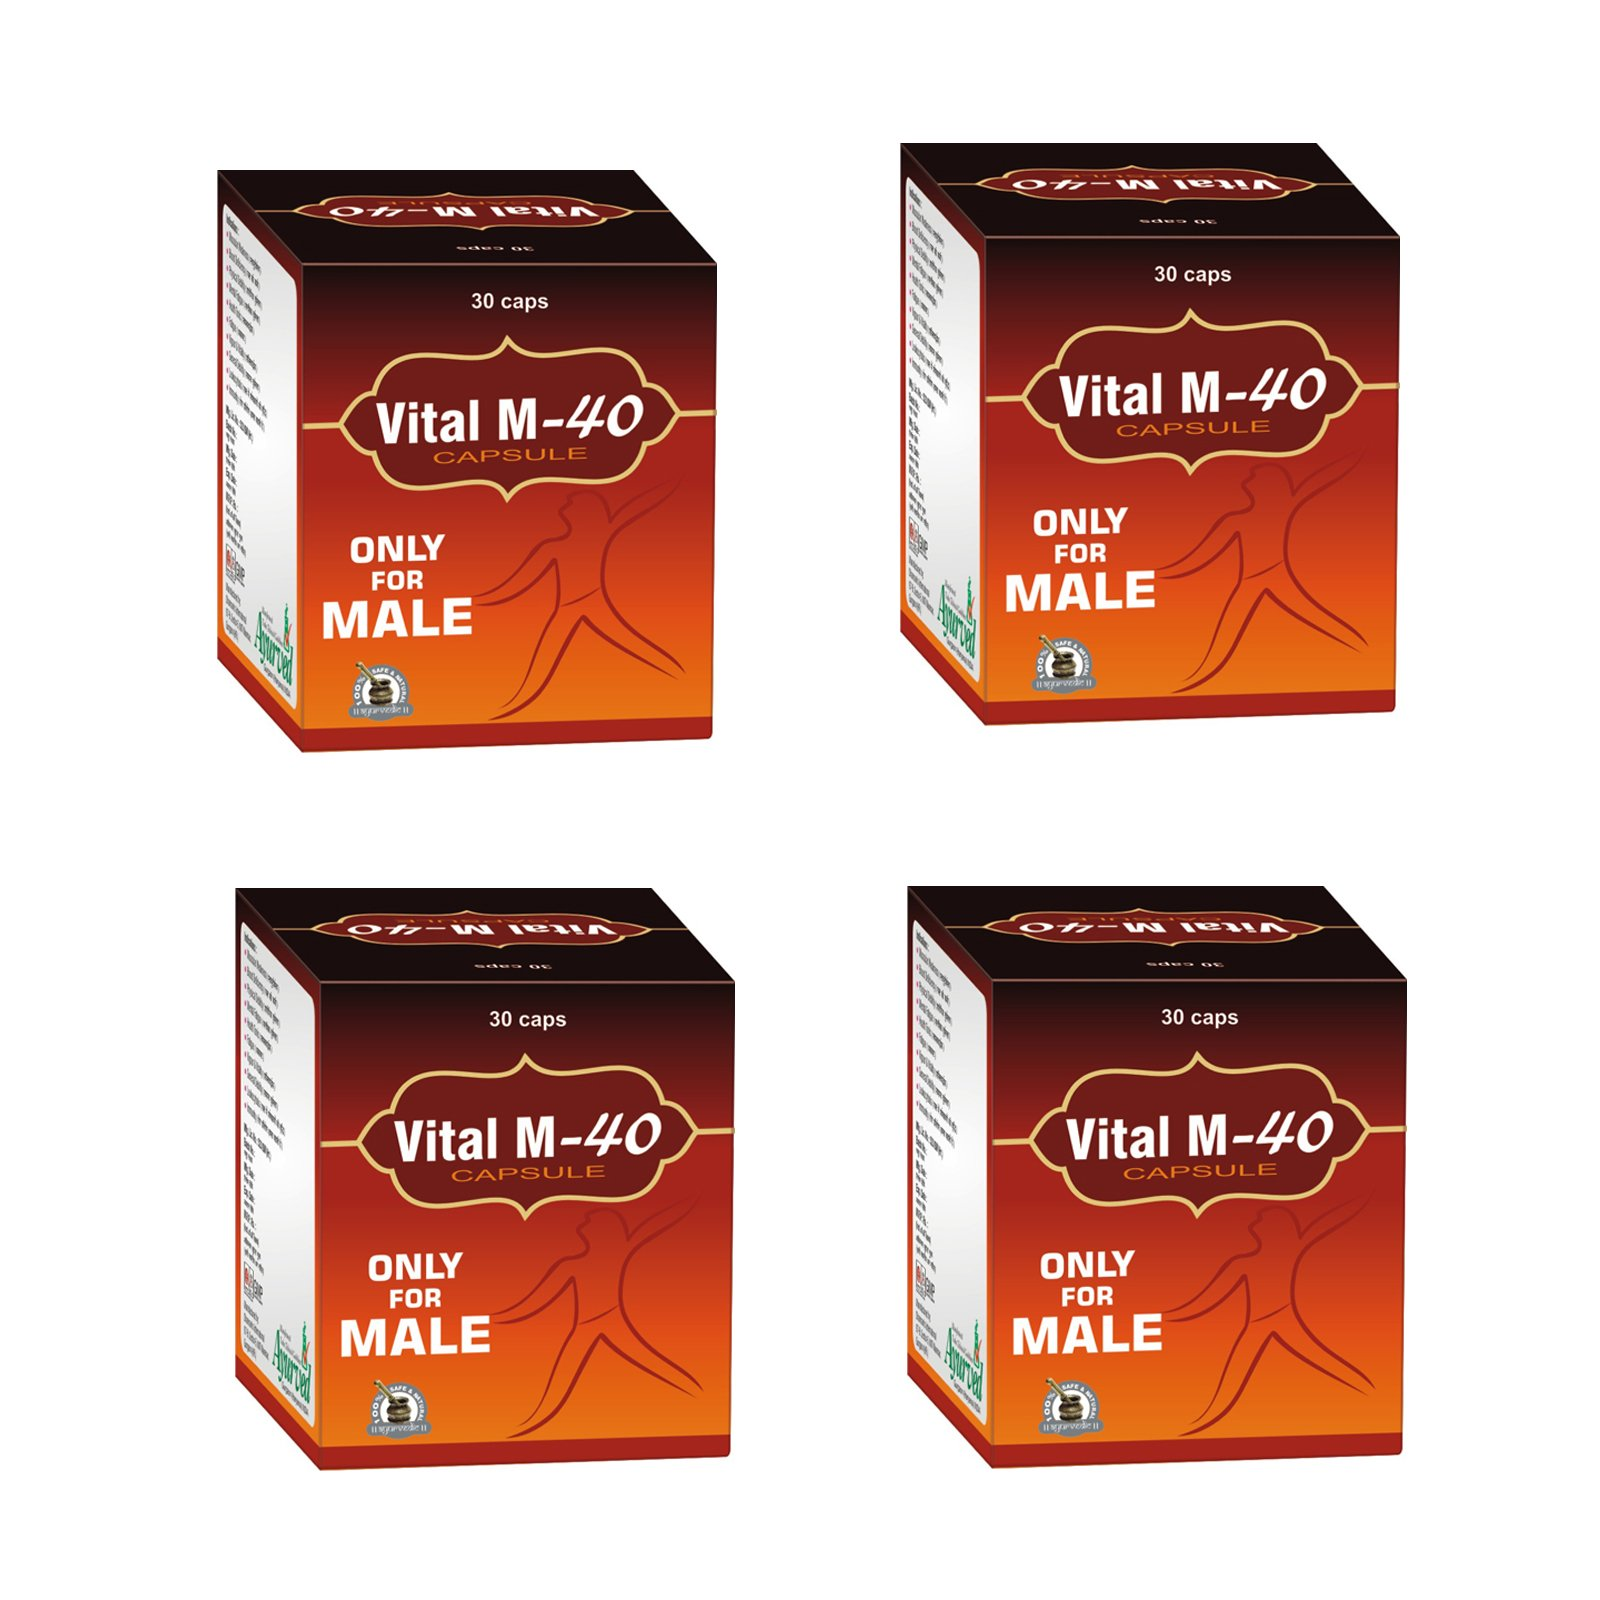 Ayurved Research Foundation Vital M-40 Capsule Best Energy Booster Supplements For Men 4 Packs of 30 Capsules